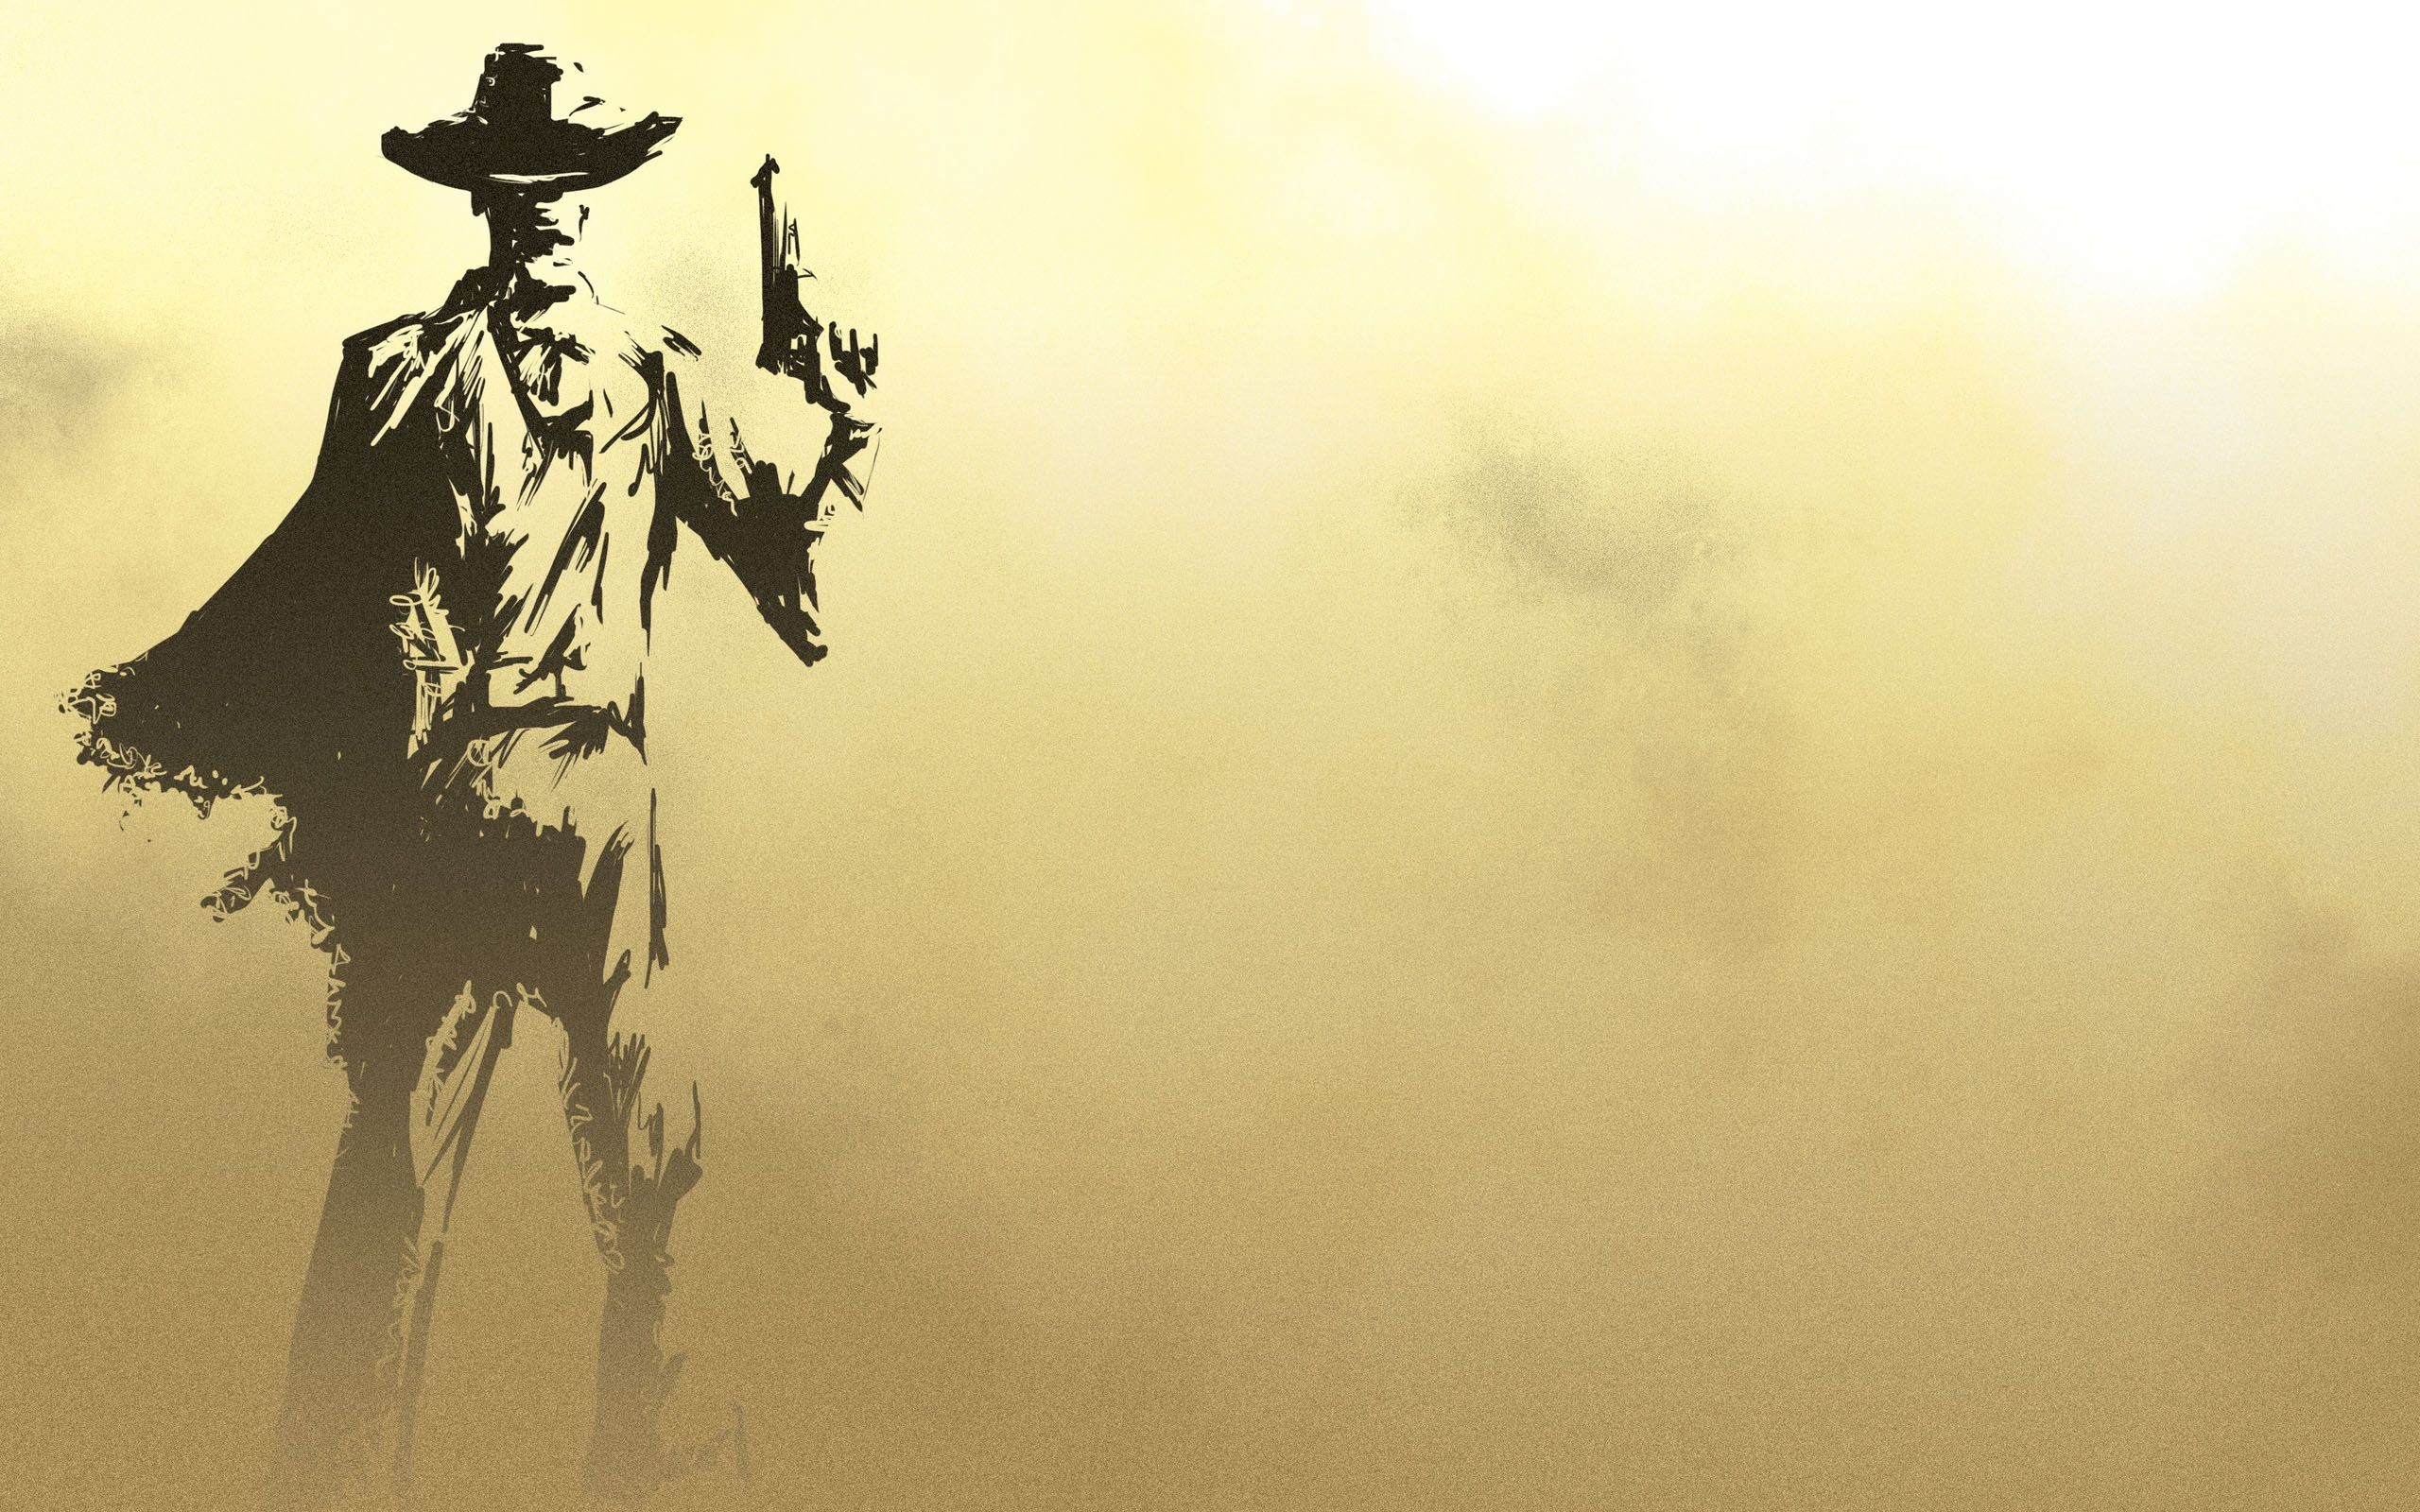 Res: 2560x1600, Cowboy Wallpaper - HD Wallpapers